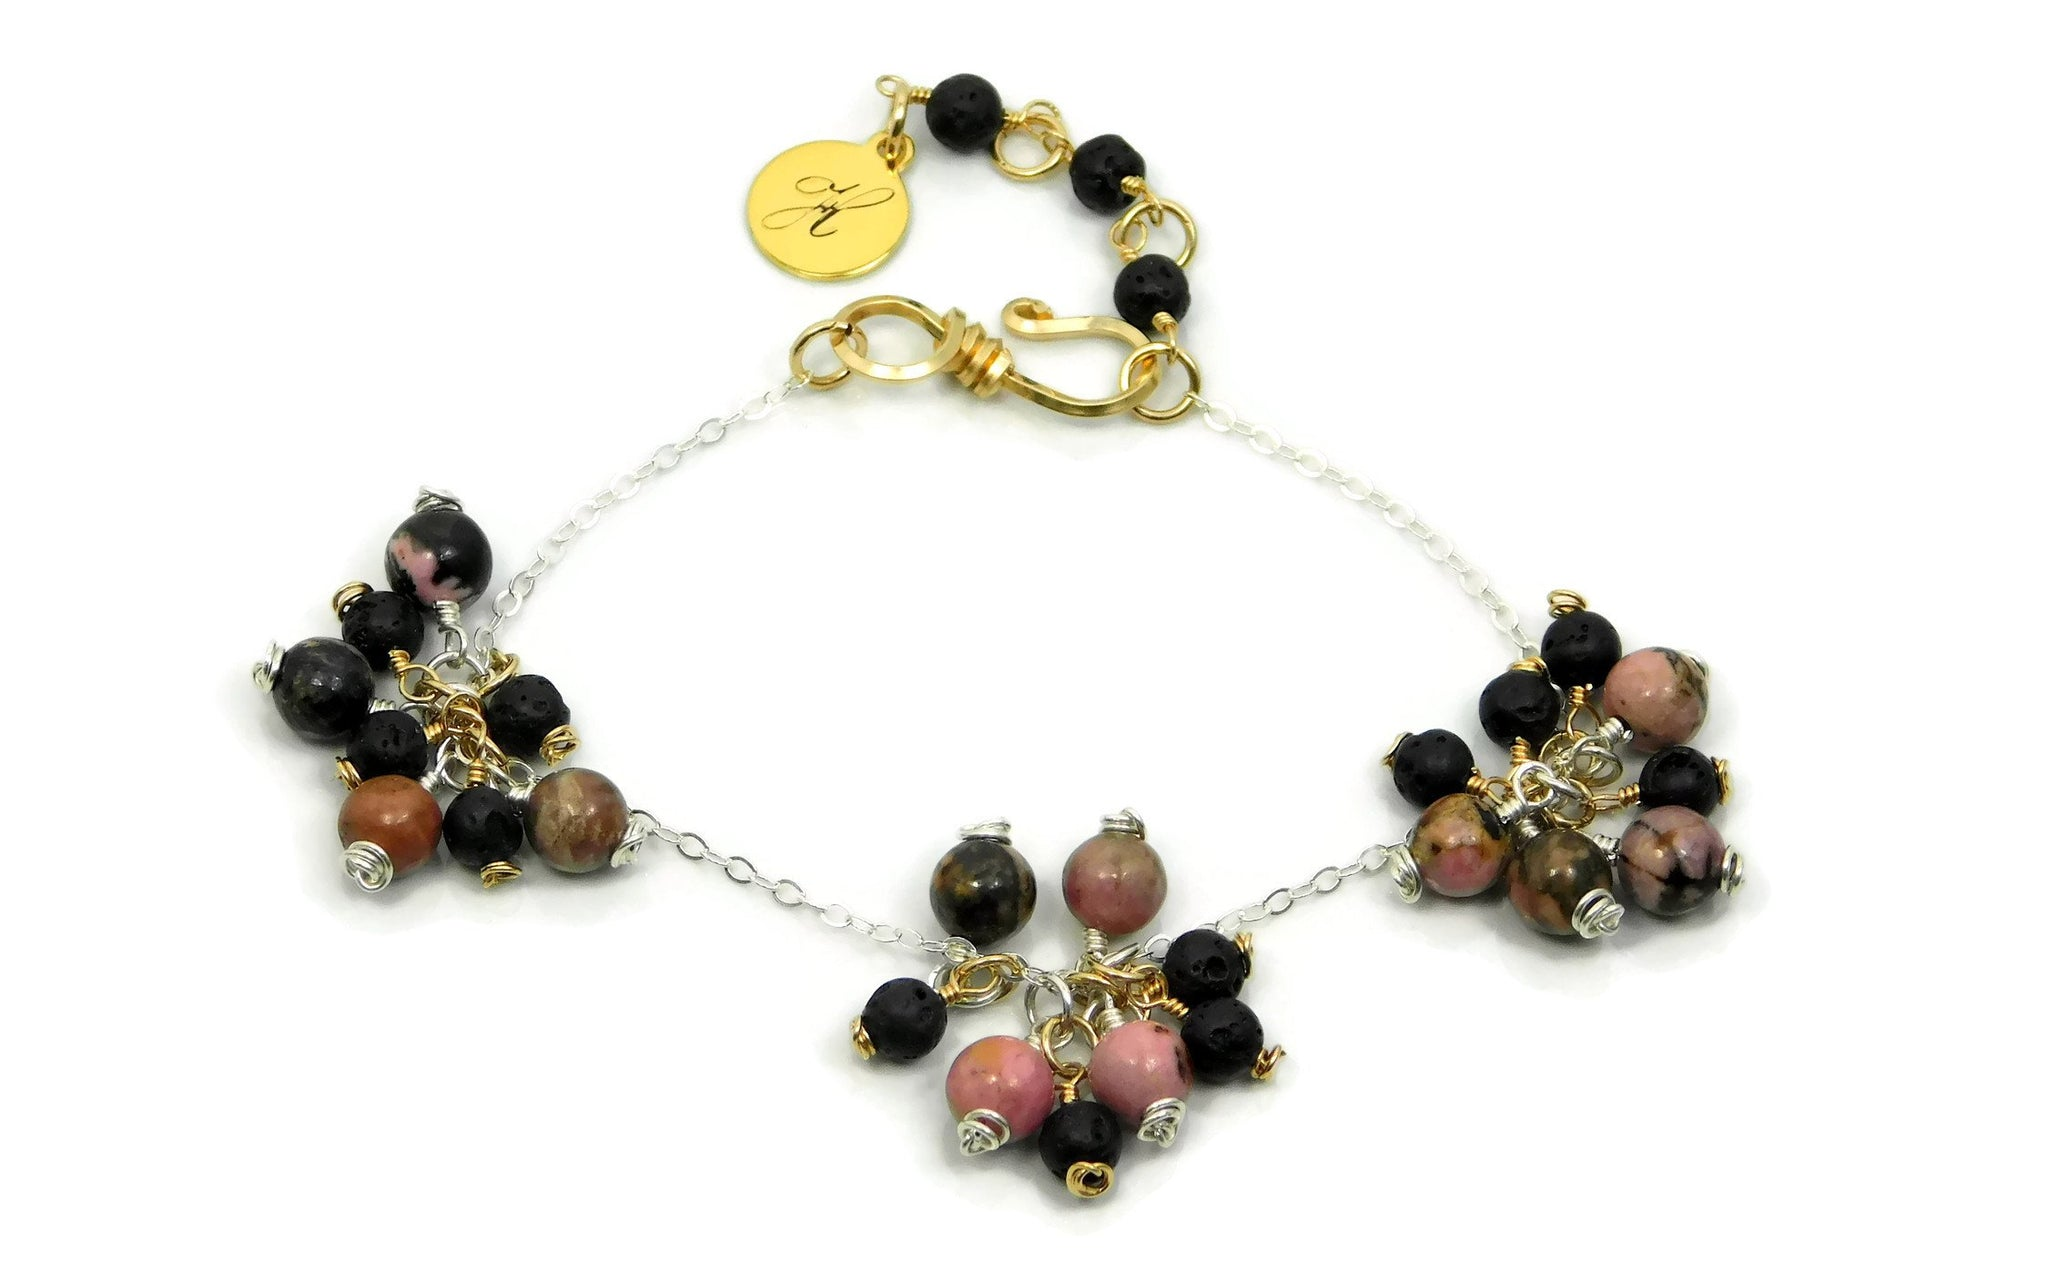 Cluster Bracelet Rhodonite Black Matrix and Lava Stone sterling silver and 14kt gold fill cold fusion jewelry gold and silver jewelry handmade silver jewelry sterling silver jewelry artisan jewelry handmade gemstone jewelry one of a kind jewelry unique jewelry